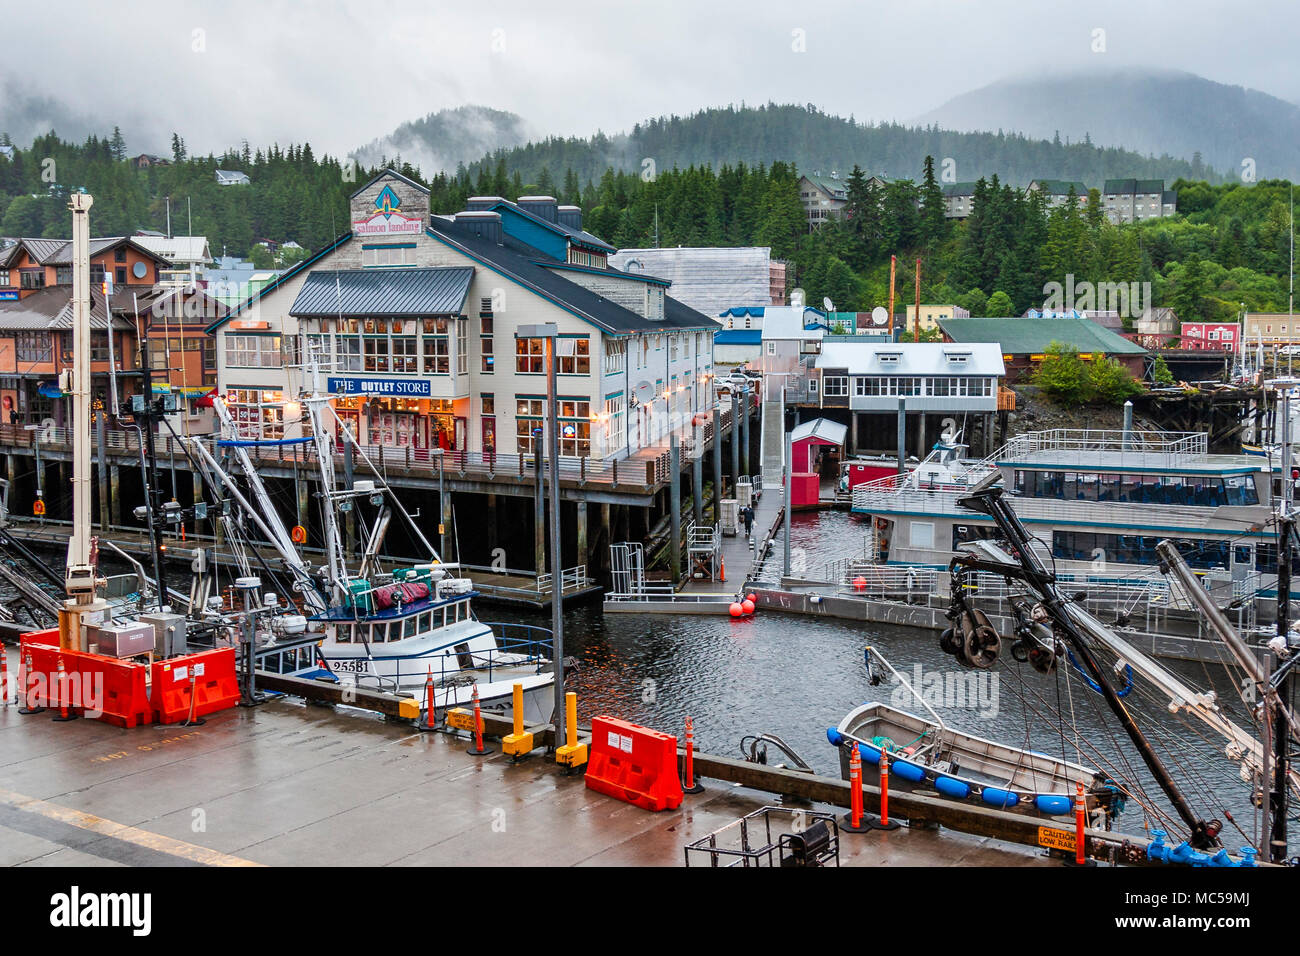 Tourism and Fishing boats at Ketchican, Alaska, port of call for Alaska cruise ships following the Inside Passage route. - Stock Image